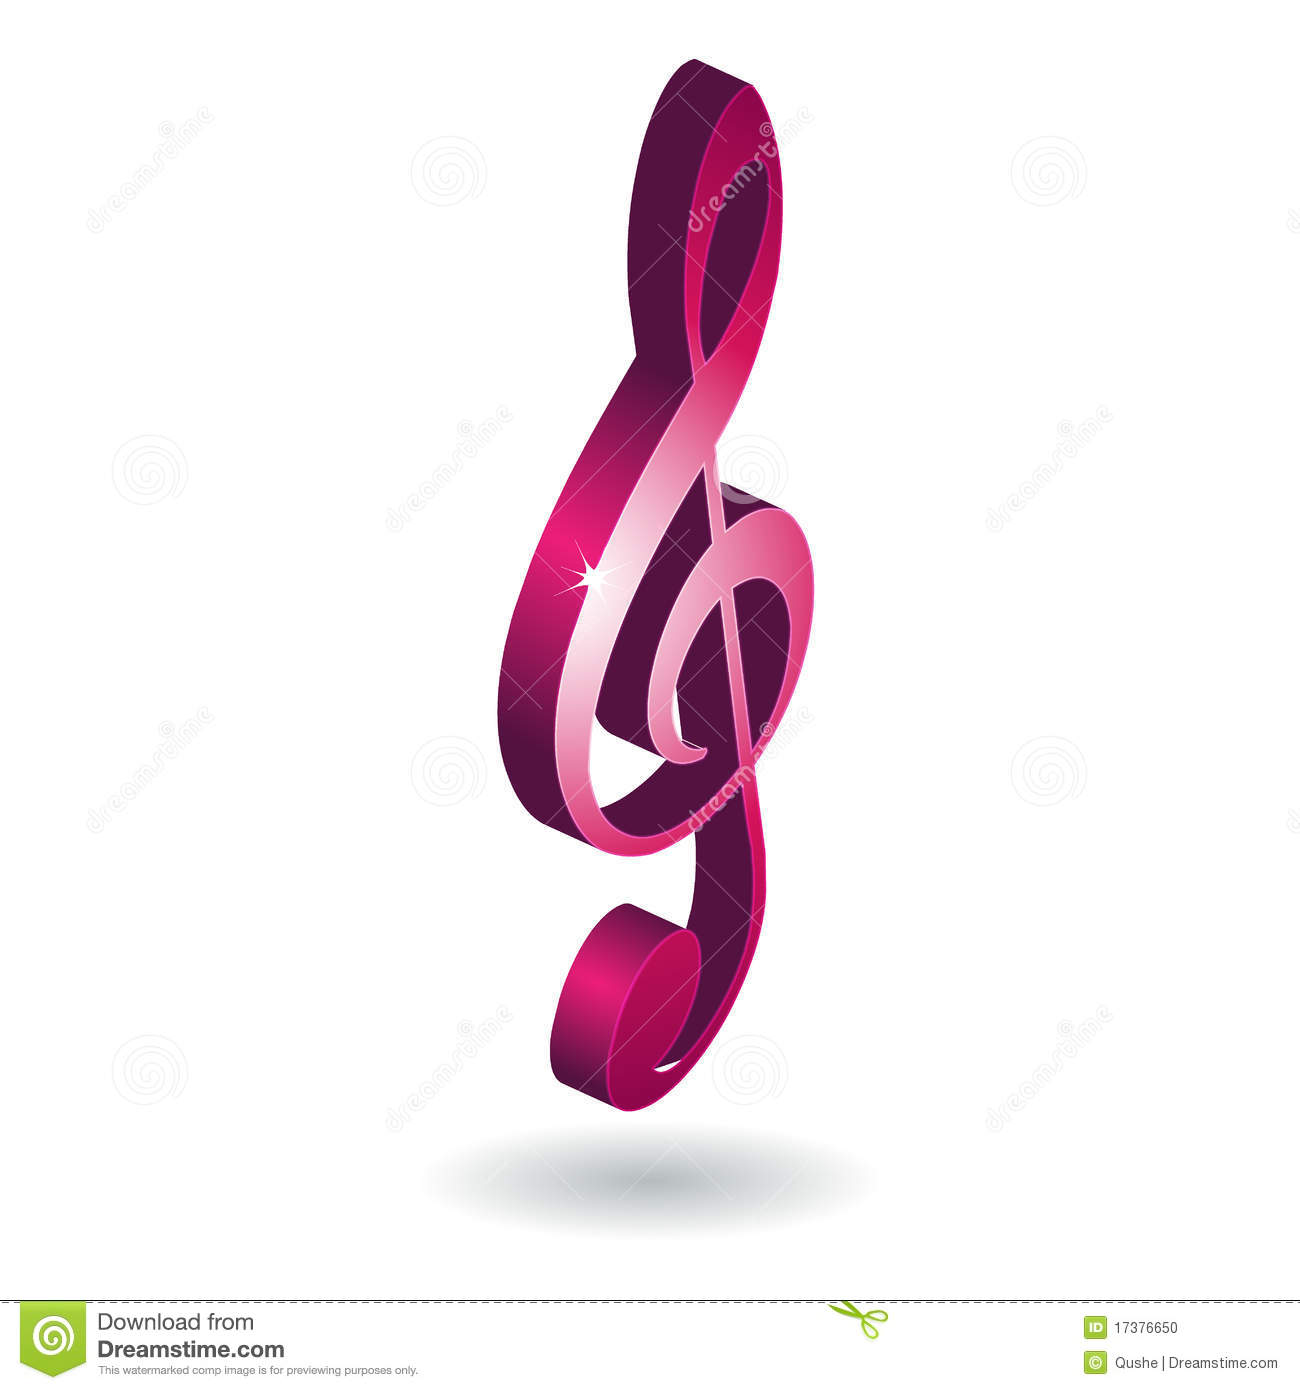 3D Music Note Symbol Stock Photo - Image: 17376650